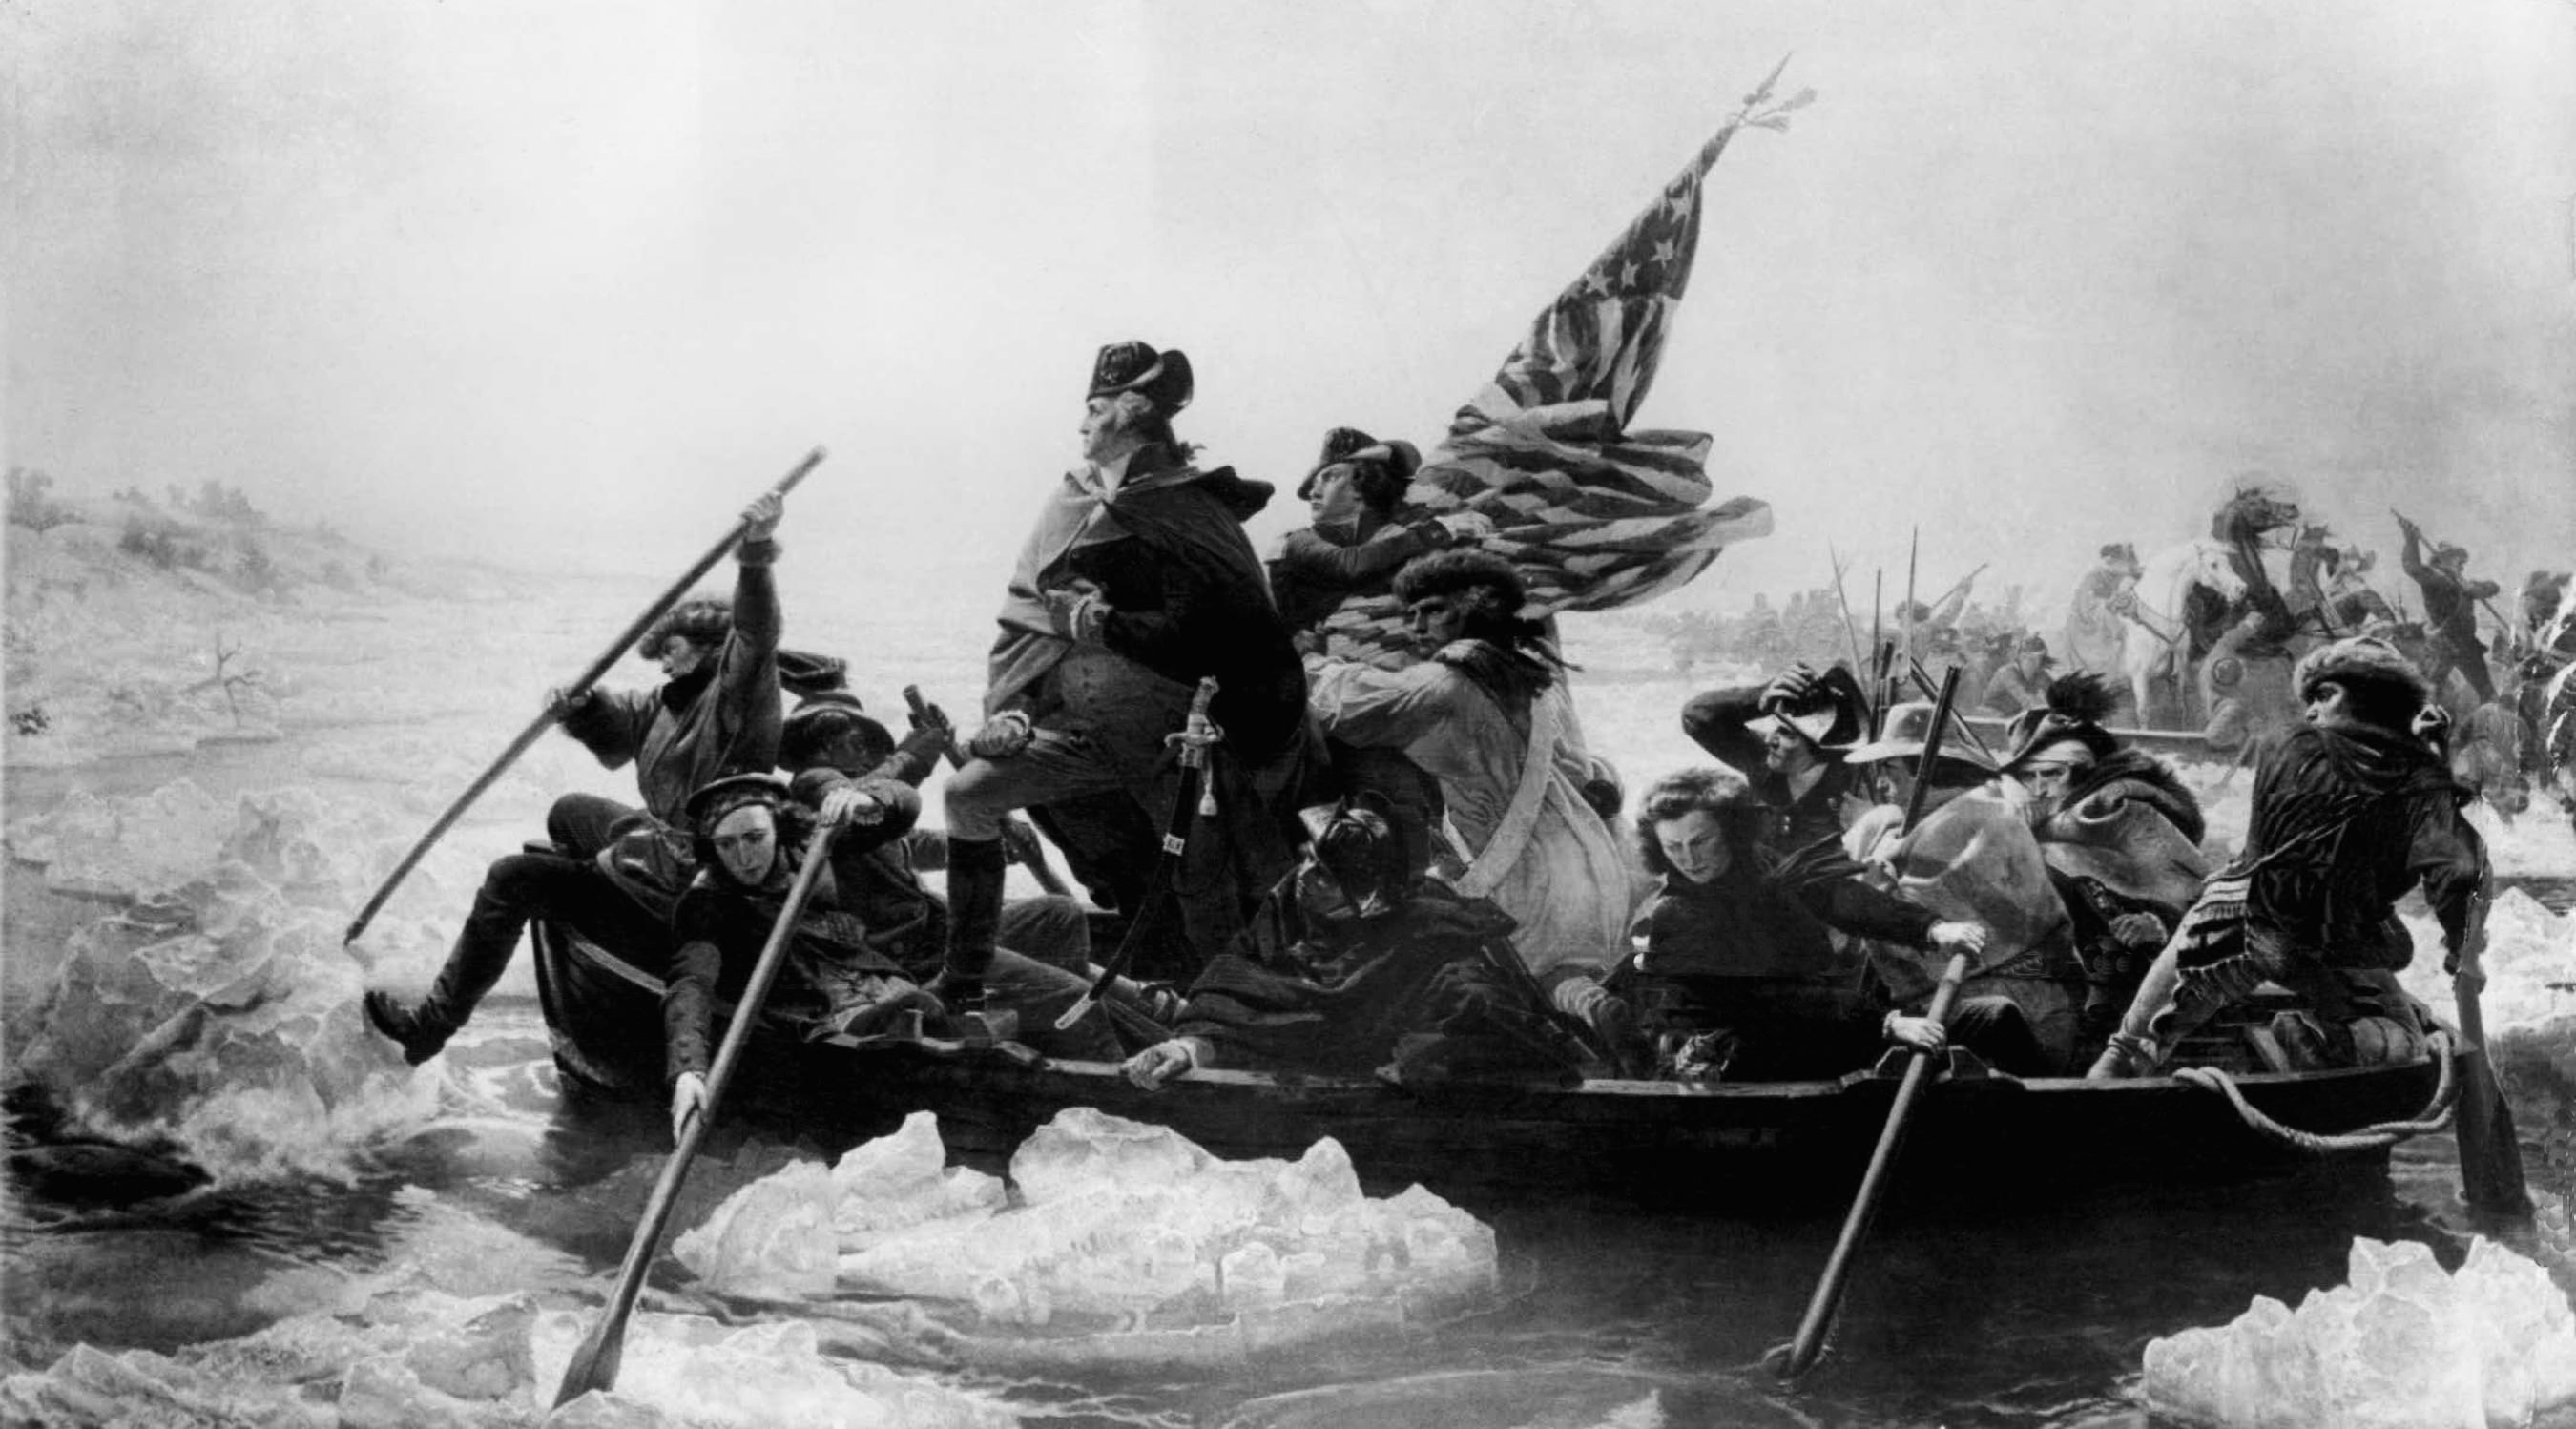 Gen. George Washington leads his troops across the Delaware River in this painting by Emmanuel G. Leutze, Dec. 1776, during the Revolutionary War.  (AP Photo)